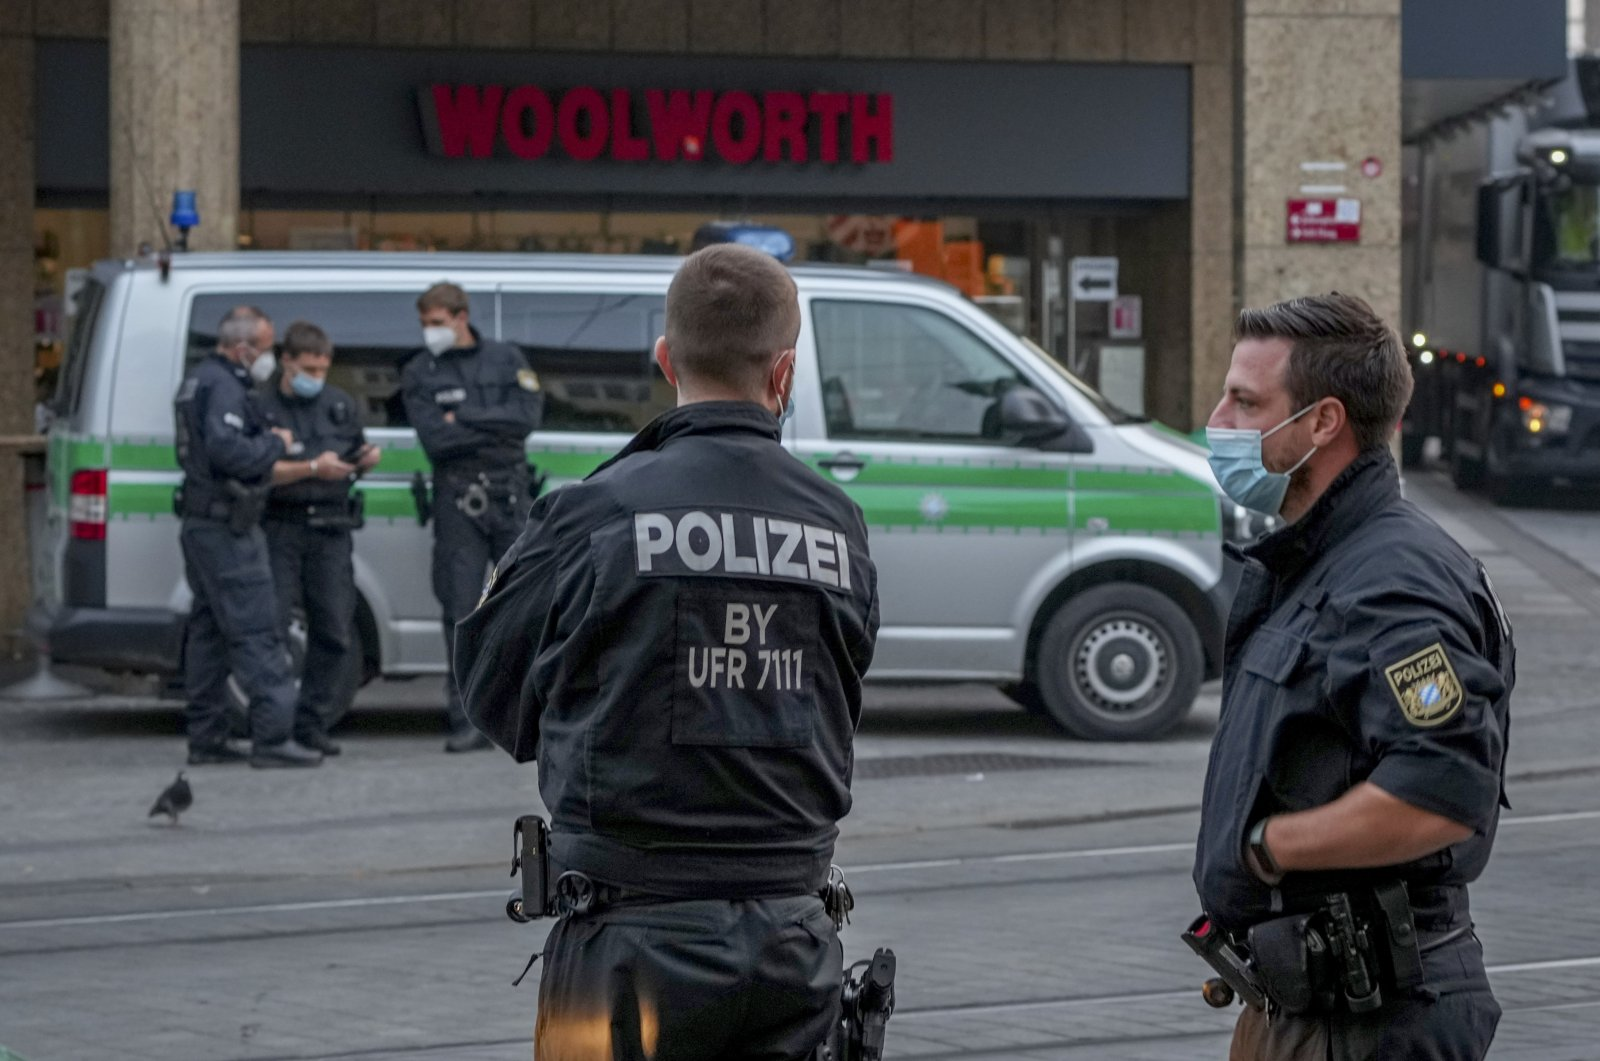 Police officers secure a crime scene in central Wuerzburg, Germany, Saturday, June 26, 2021. (AP Photo)